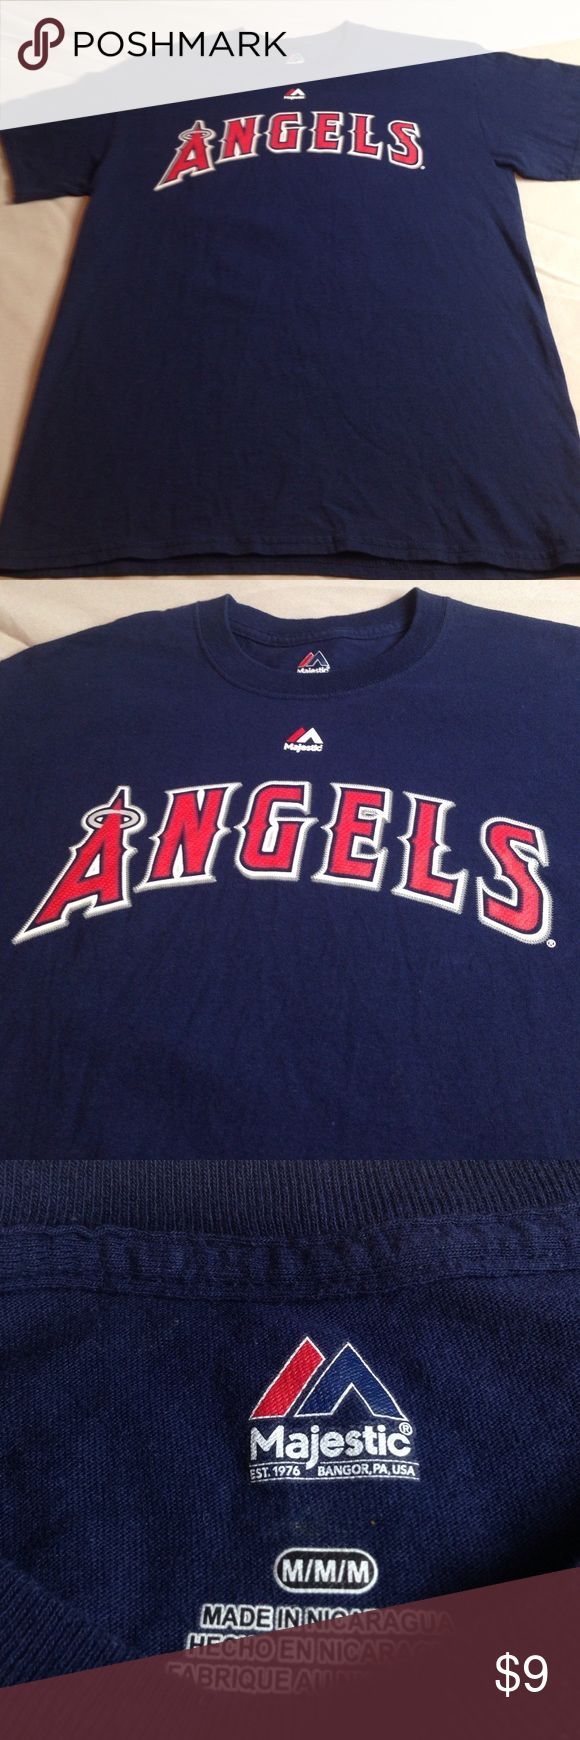 ANGELS BASEBALL TEAM # 27 TROUT TOP TEE EXCELLENT ANGELS BASEBALL TEAM # 27 TROUT TOP TEE EXCELLENT CONDITION Size M MEN Majestic Shirts Tees - Short Sleeve